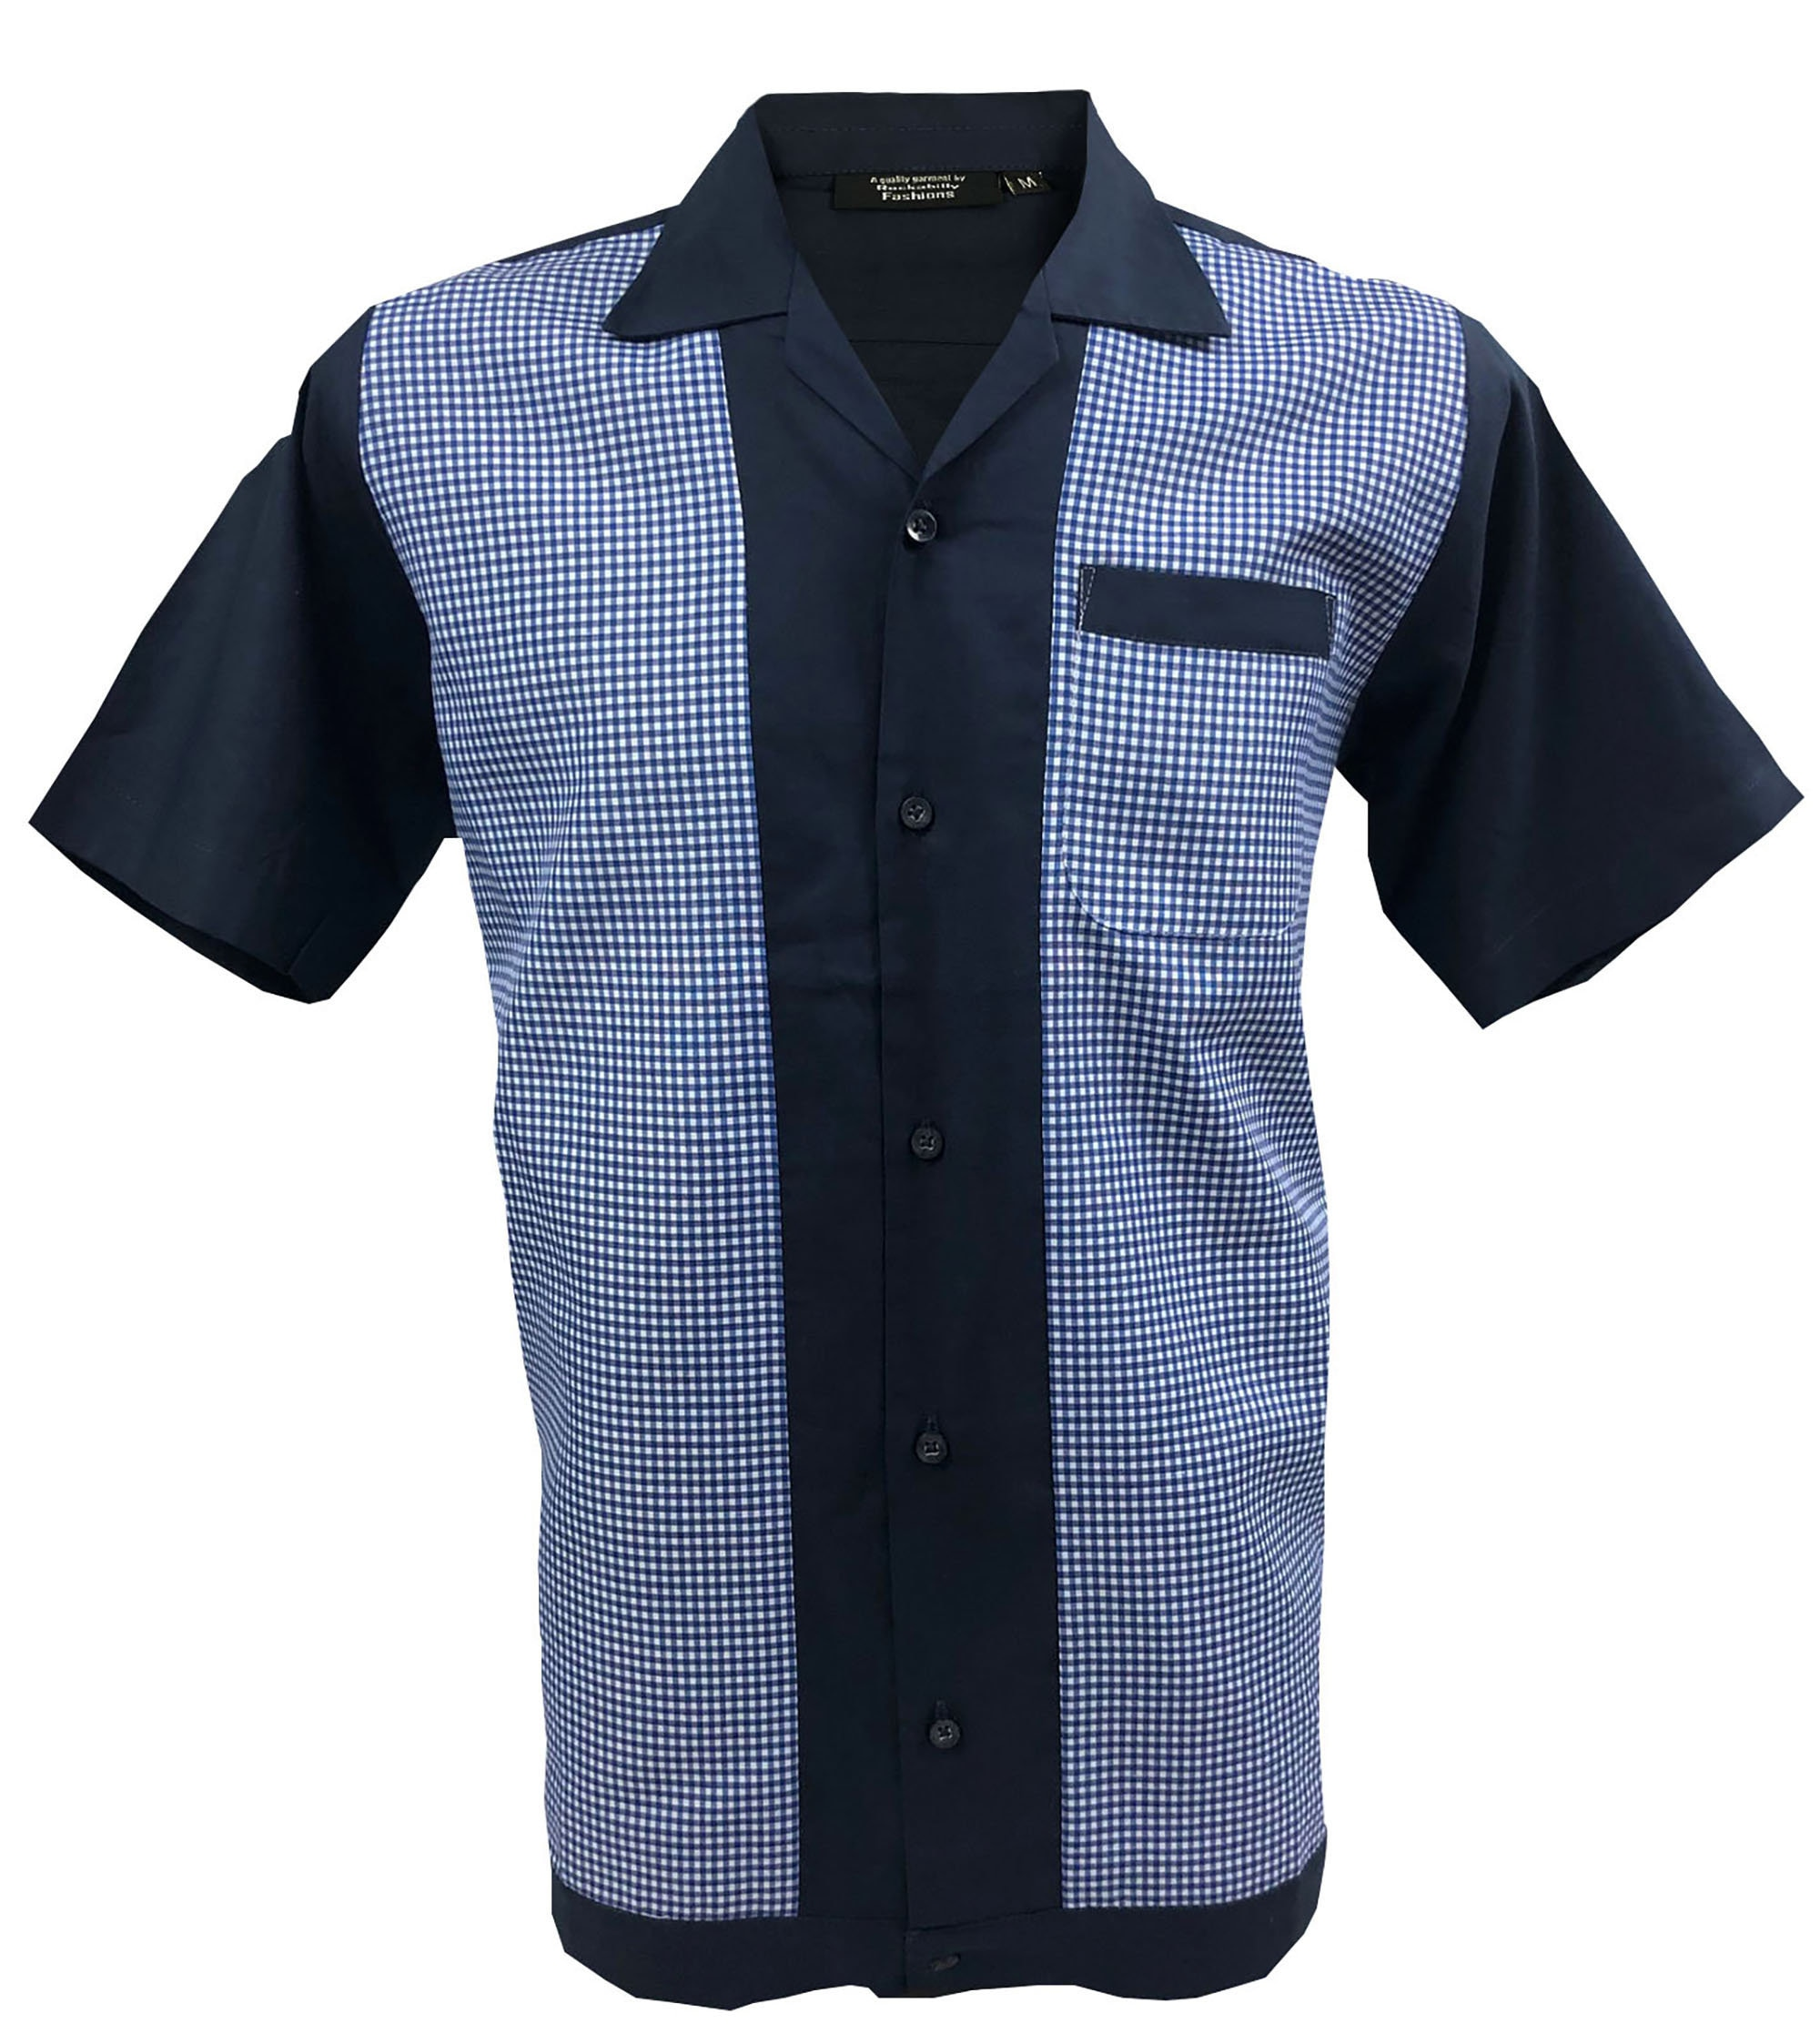 Retro Navy Blue with White Panels 1950s1960s Rockabilly Bowling Vintage Men/'s shirt